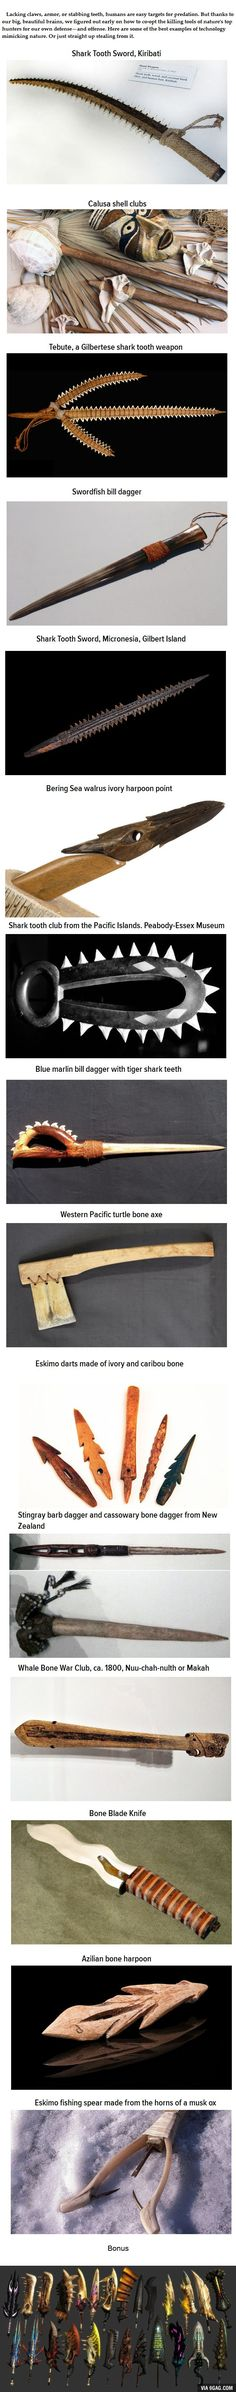 15 Human Weapons Made from Animal Weapons